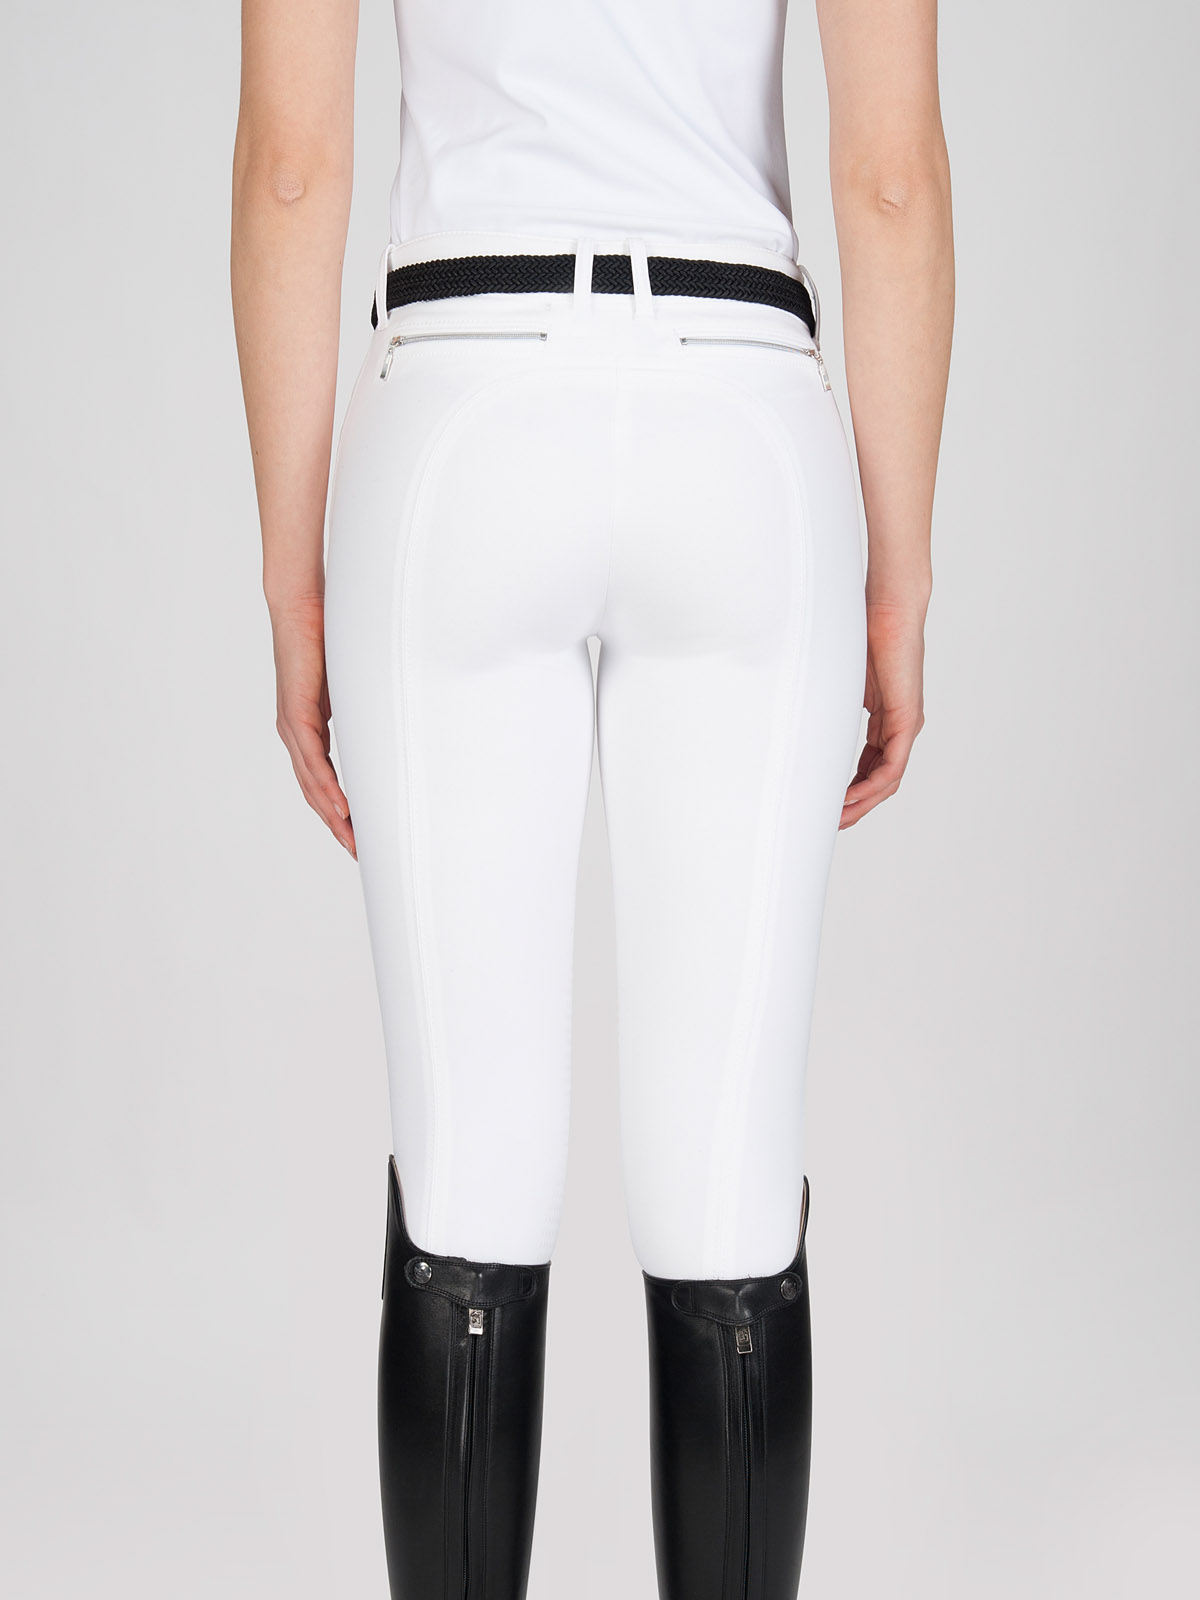 ASH Women's Riding Breeches with X-Grip Knee Patch 1